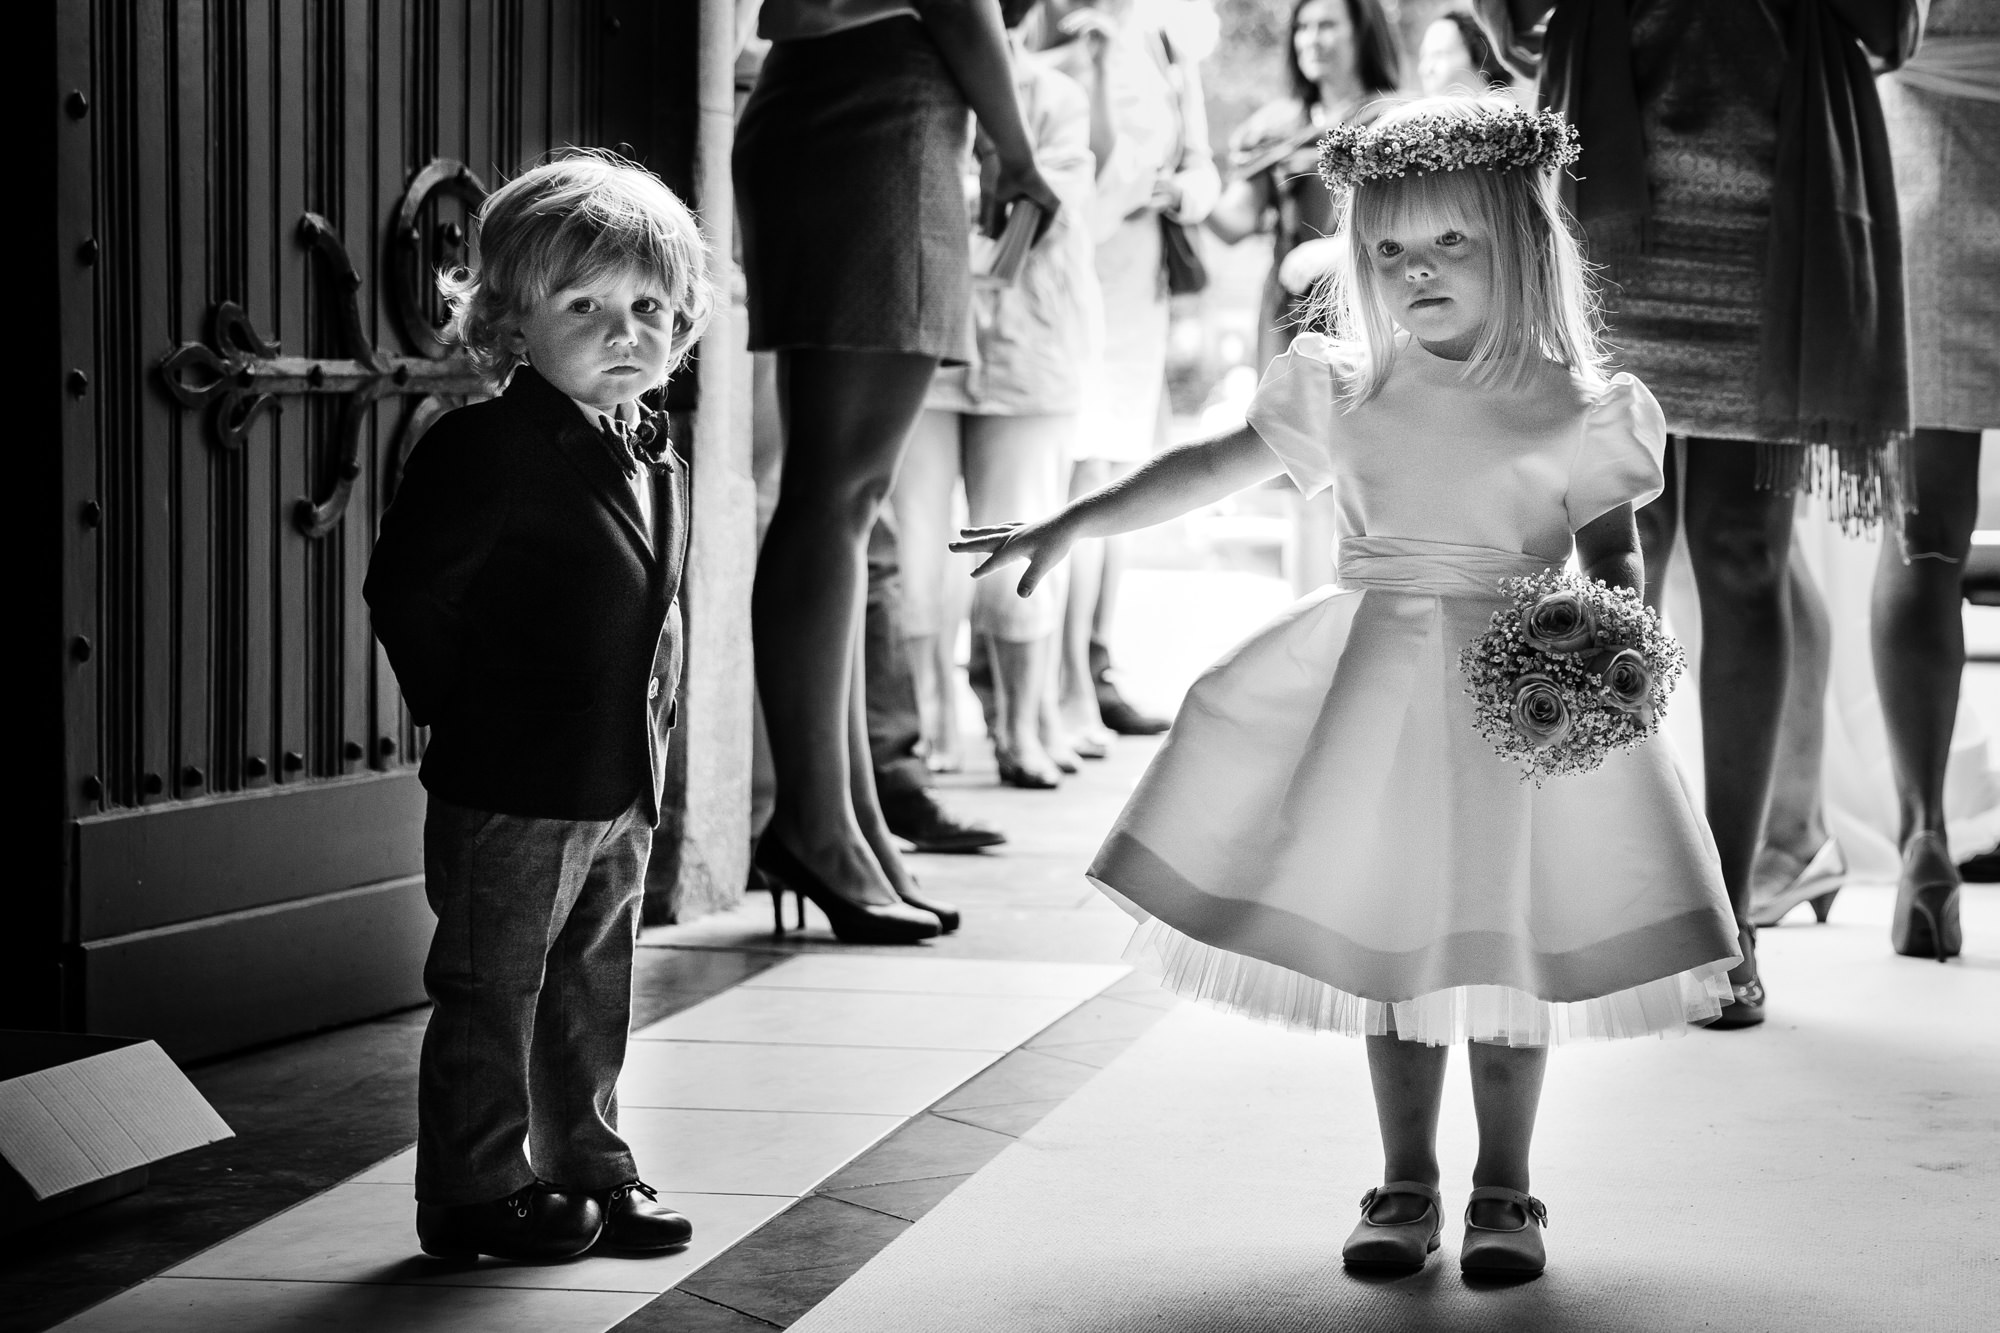 Flower girl helps brother down the aisle - photo by Yves Schepers